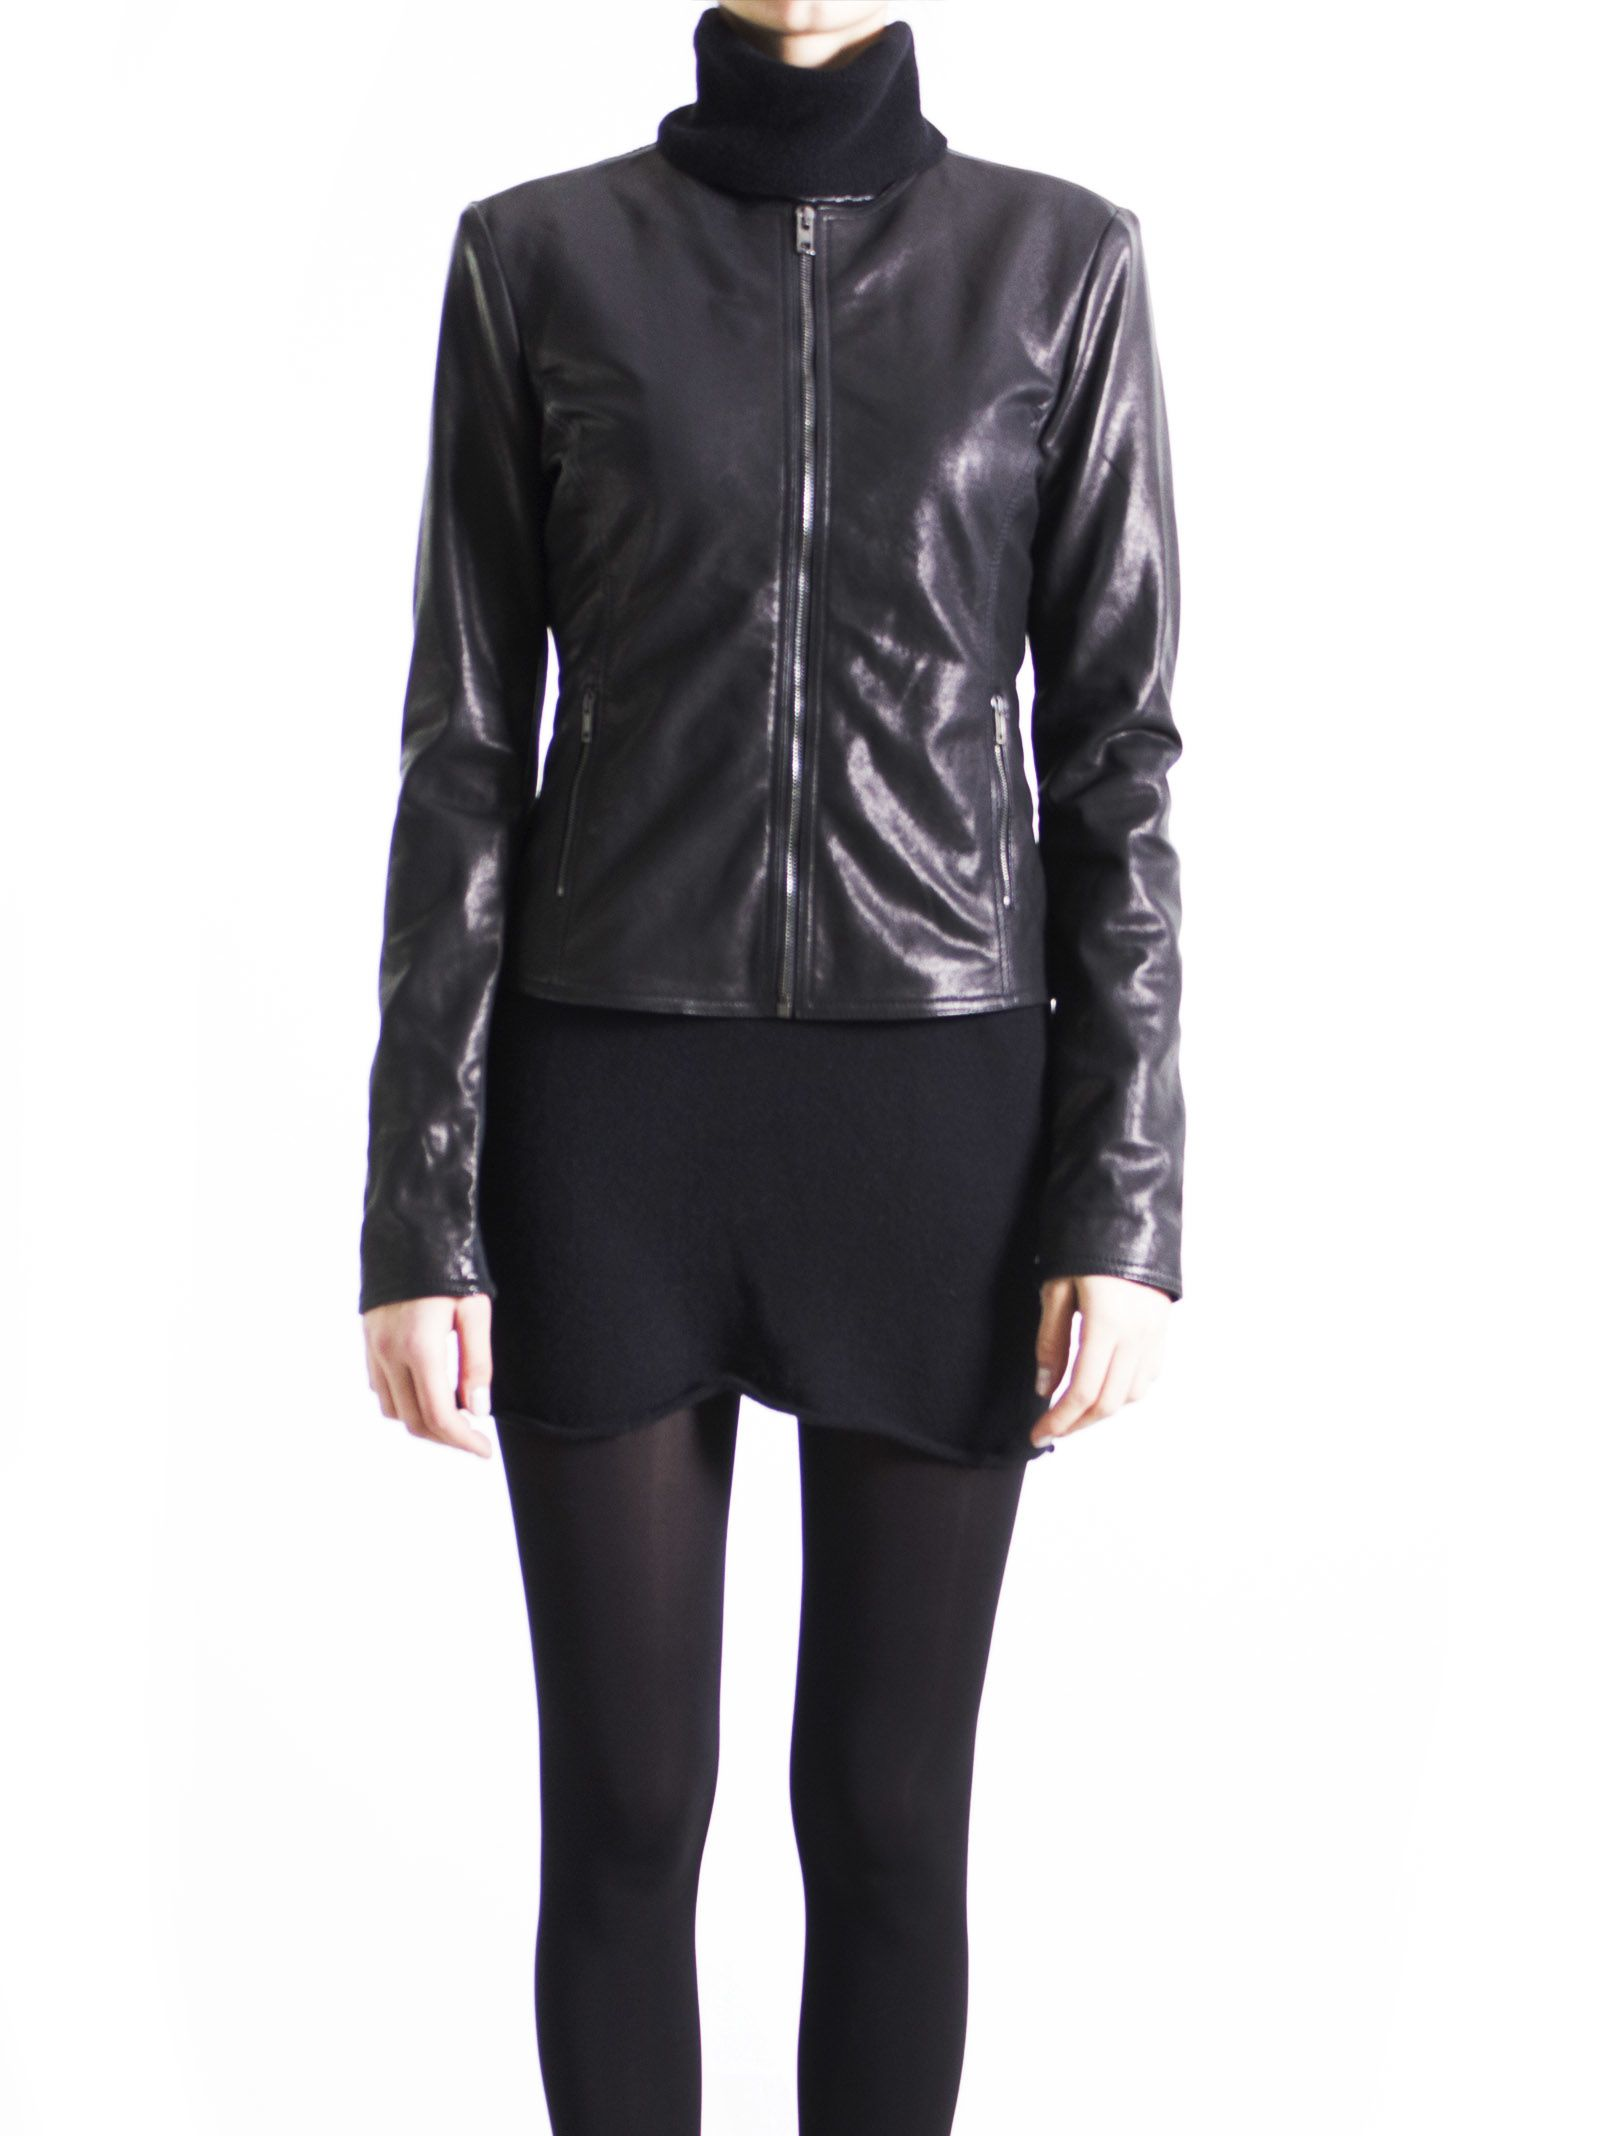 I put this black leather/knit jacket on my wish list in the wee hours this morning (10/21) and by the time I went to go back and order it (waiting to see it on your show), it was already gone.